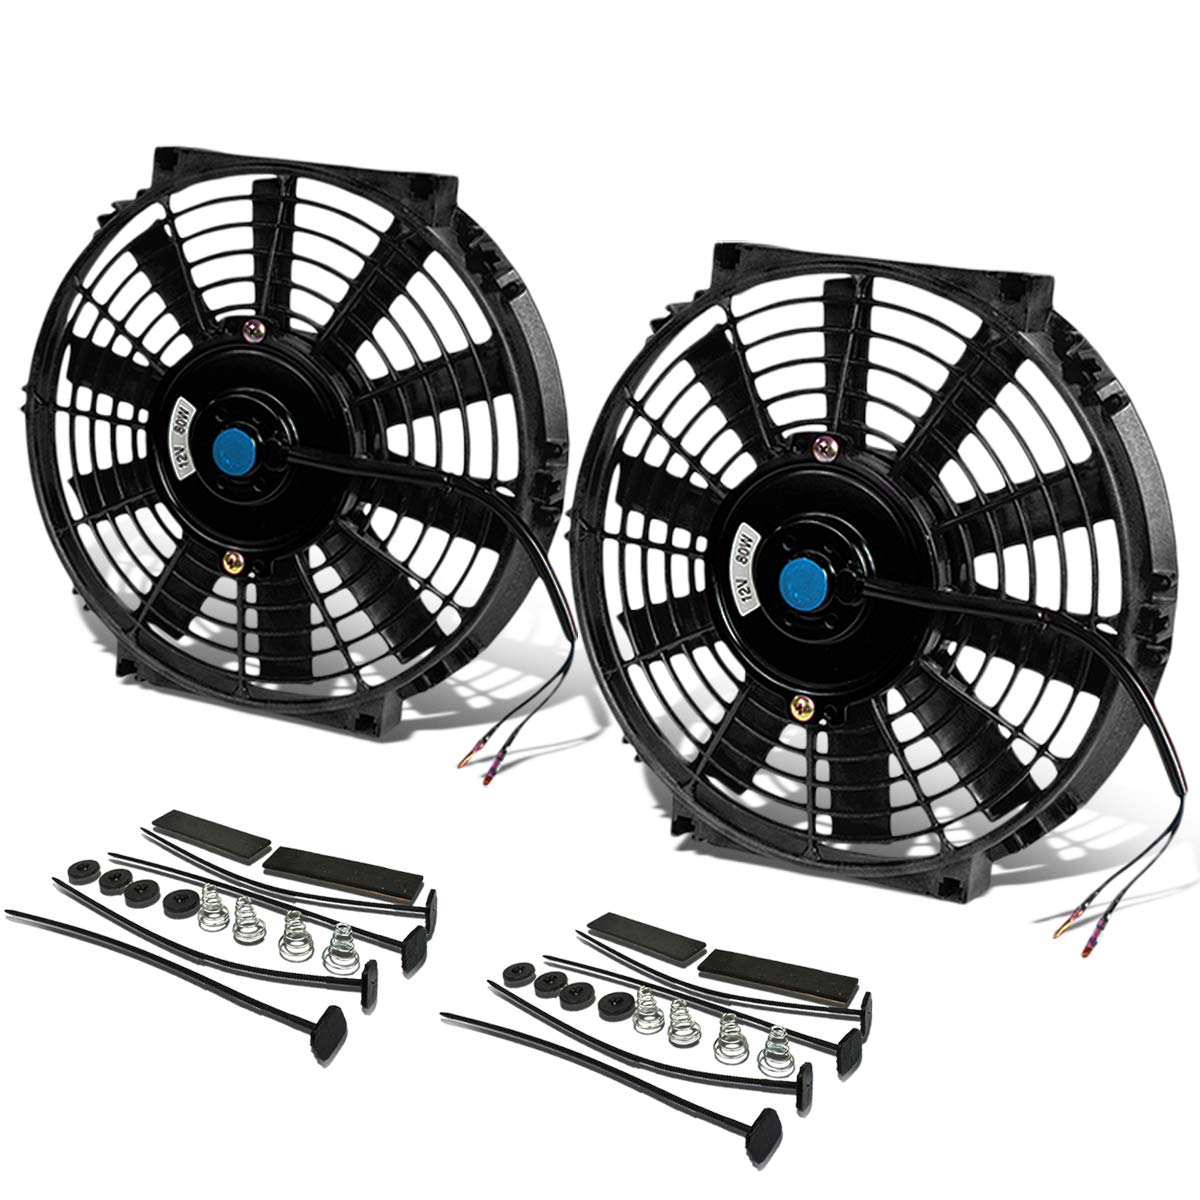 (Pack of 2) 10 Inch High Performance 12V Electric Slim Radiator Cooling Fan w/Mounting Kit - Black